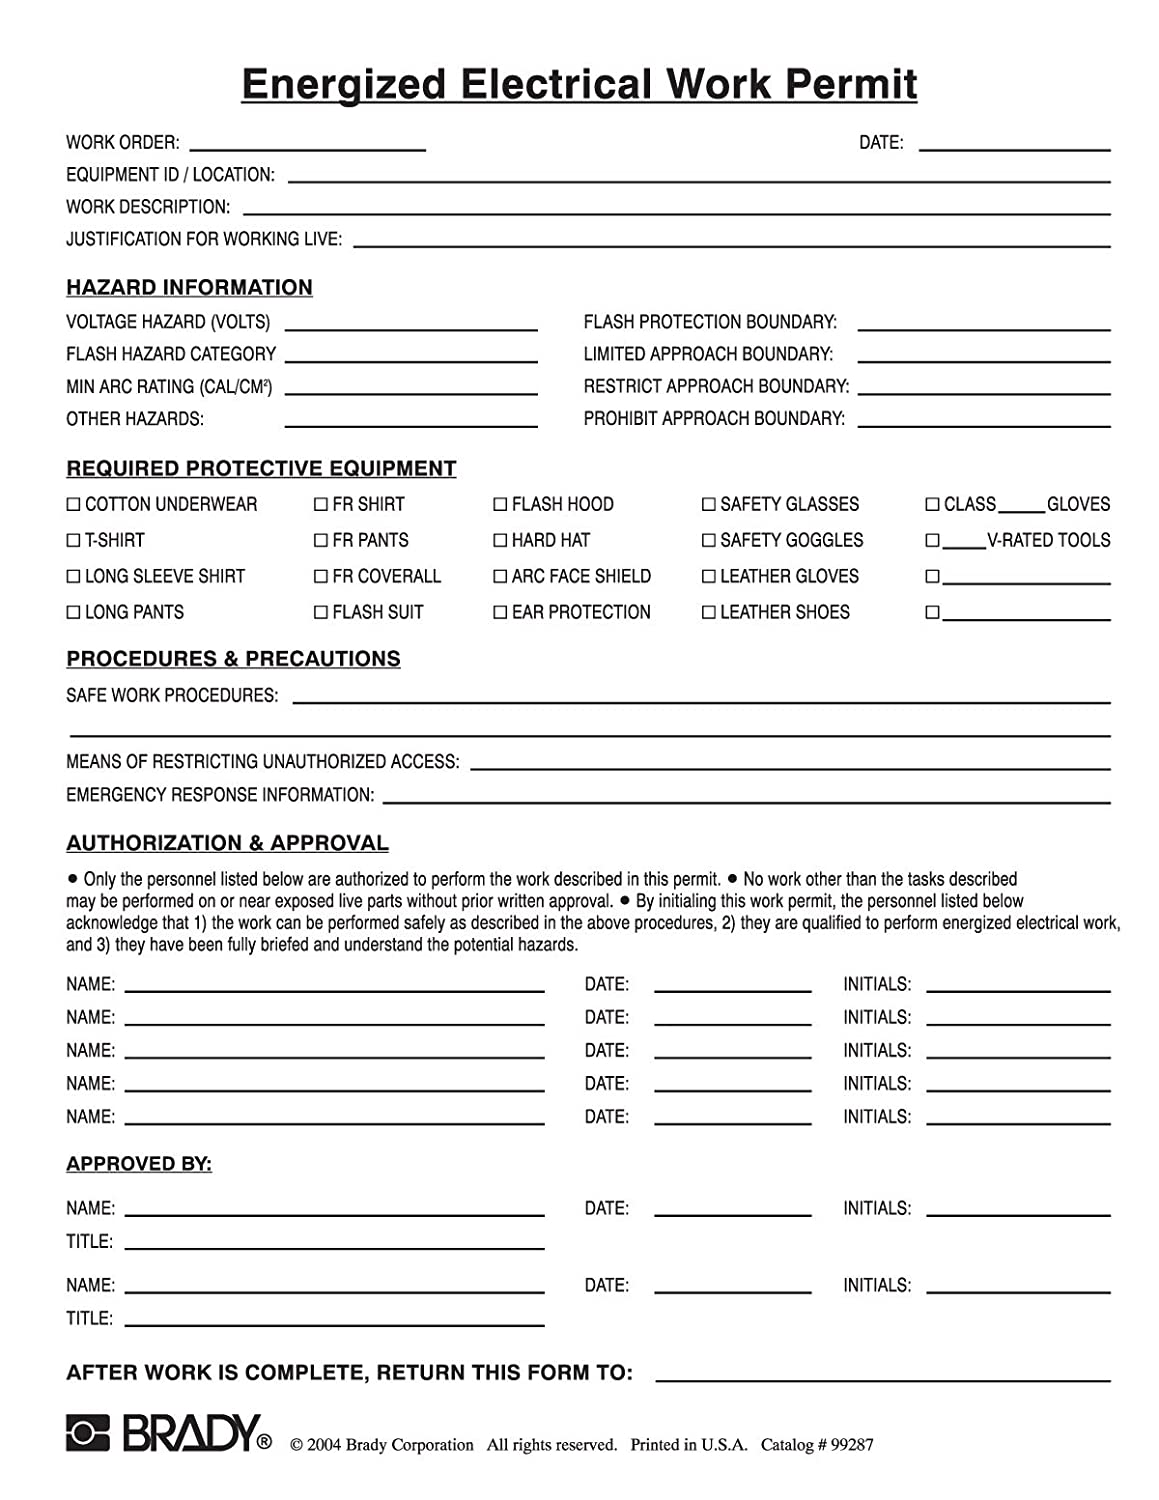 arc flash policy template - nfpa 70e energized electrical work permit form